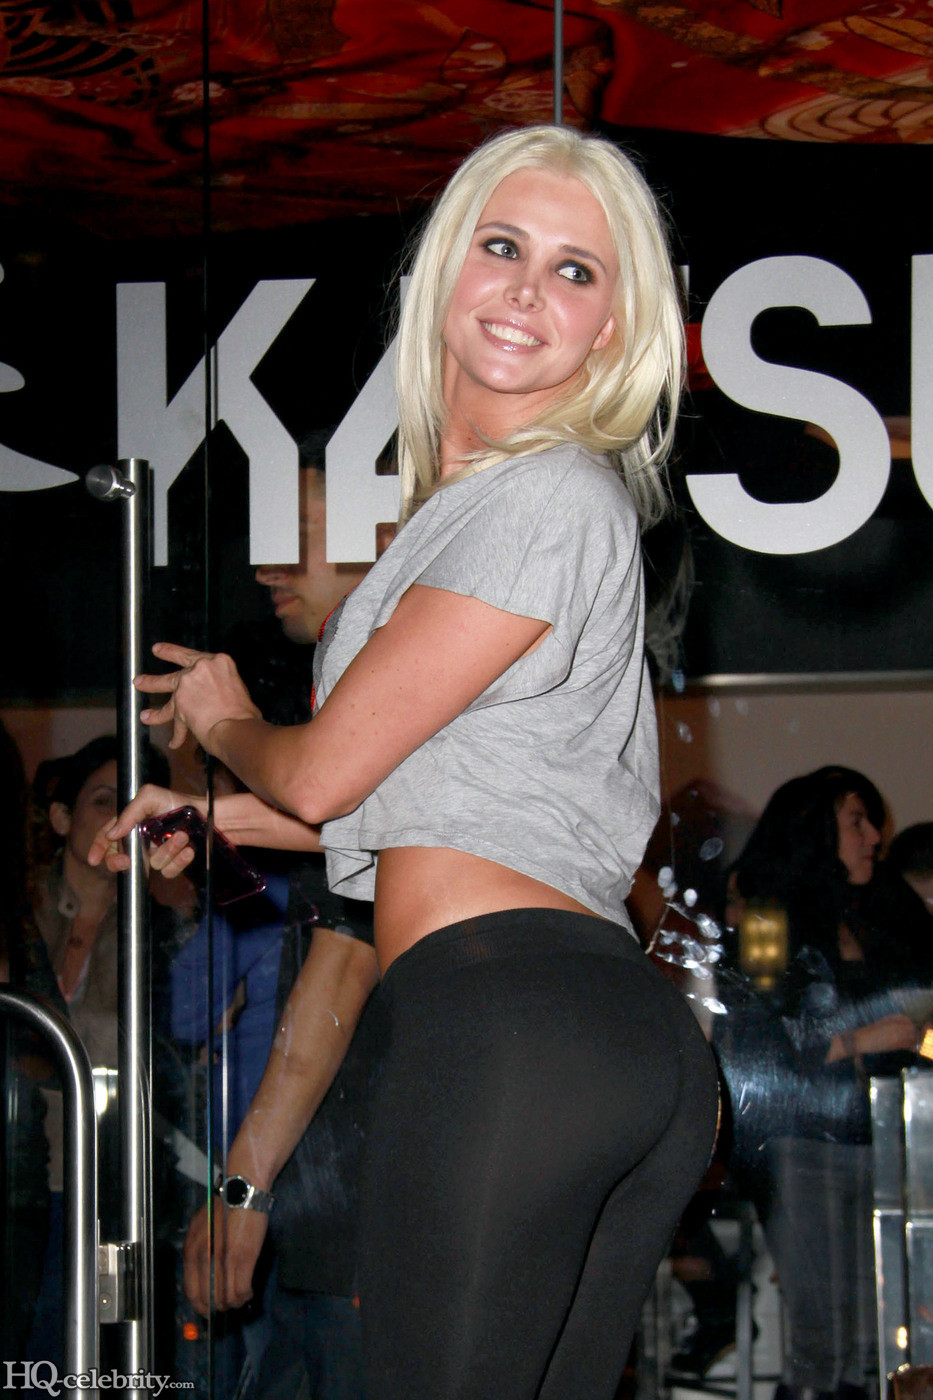 Celebrity Butts: Karissa Shannon in tight black pants